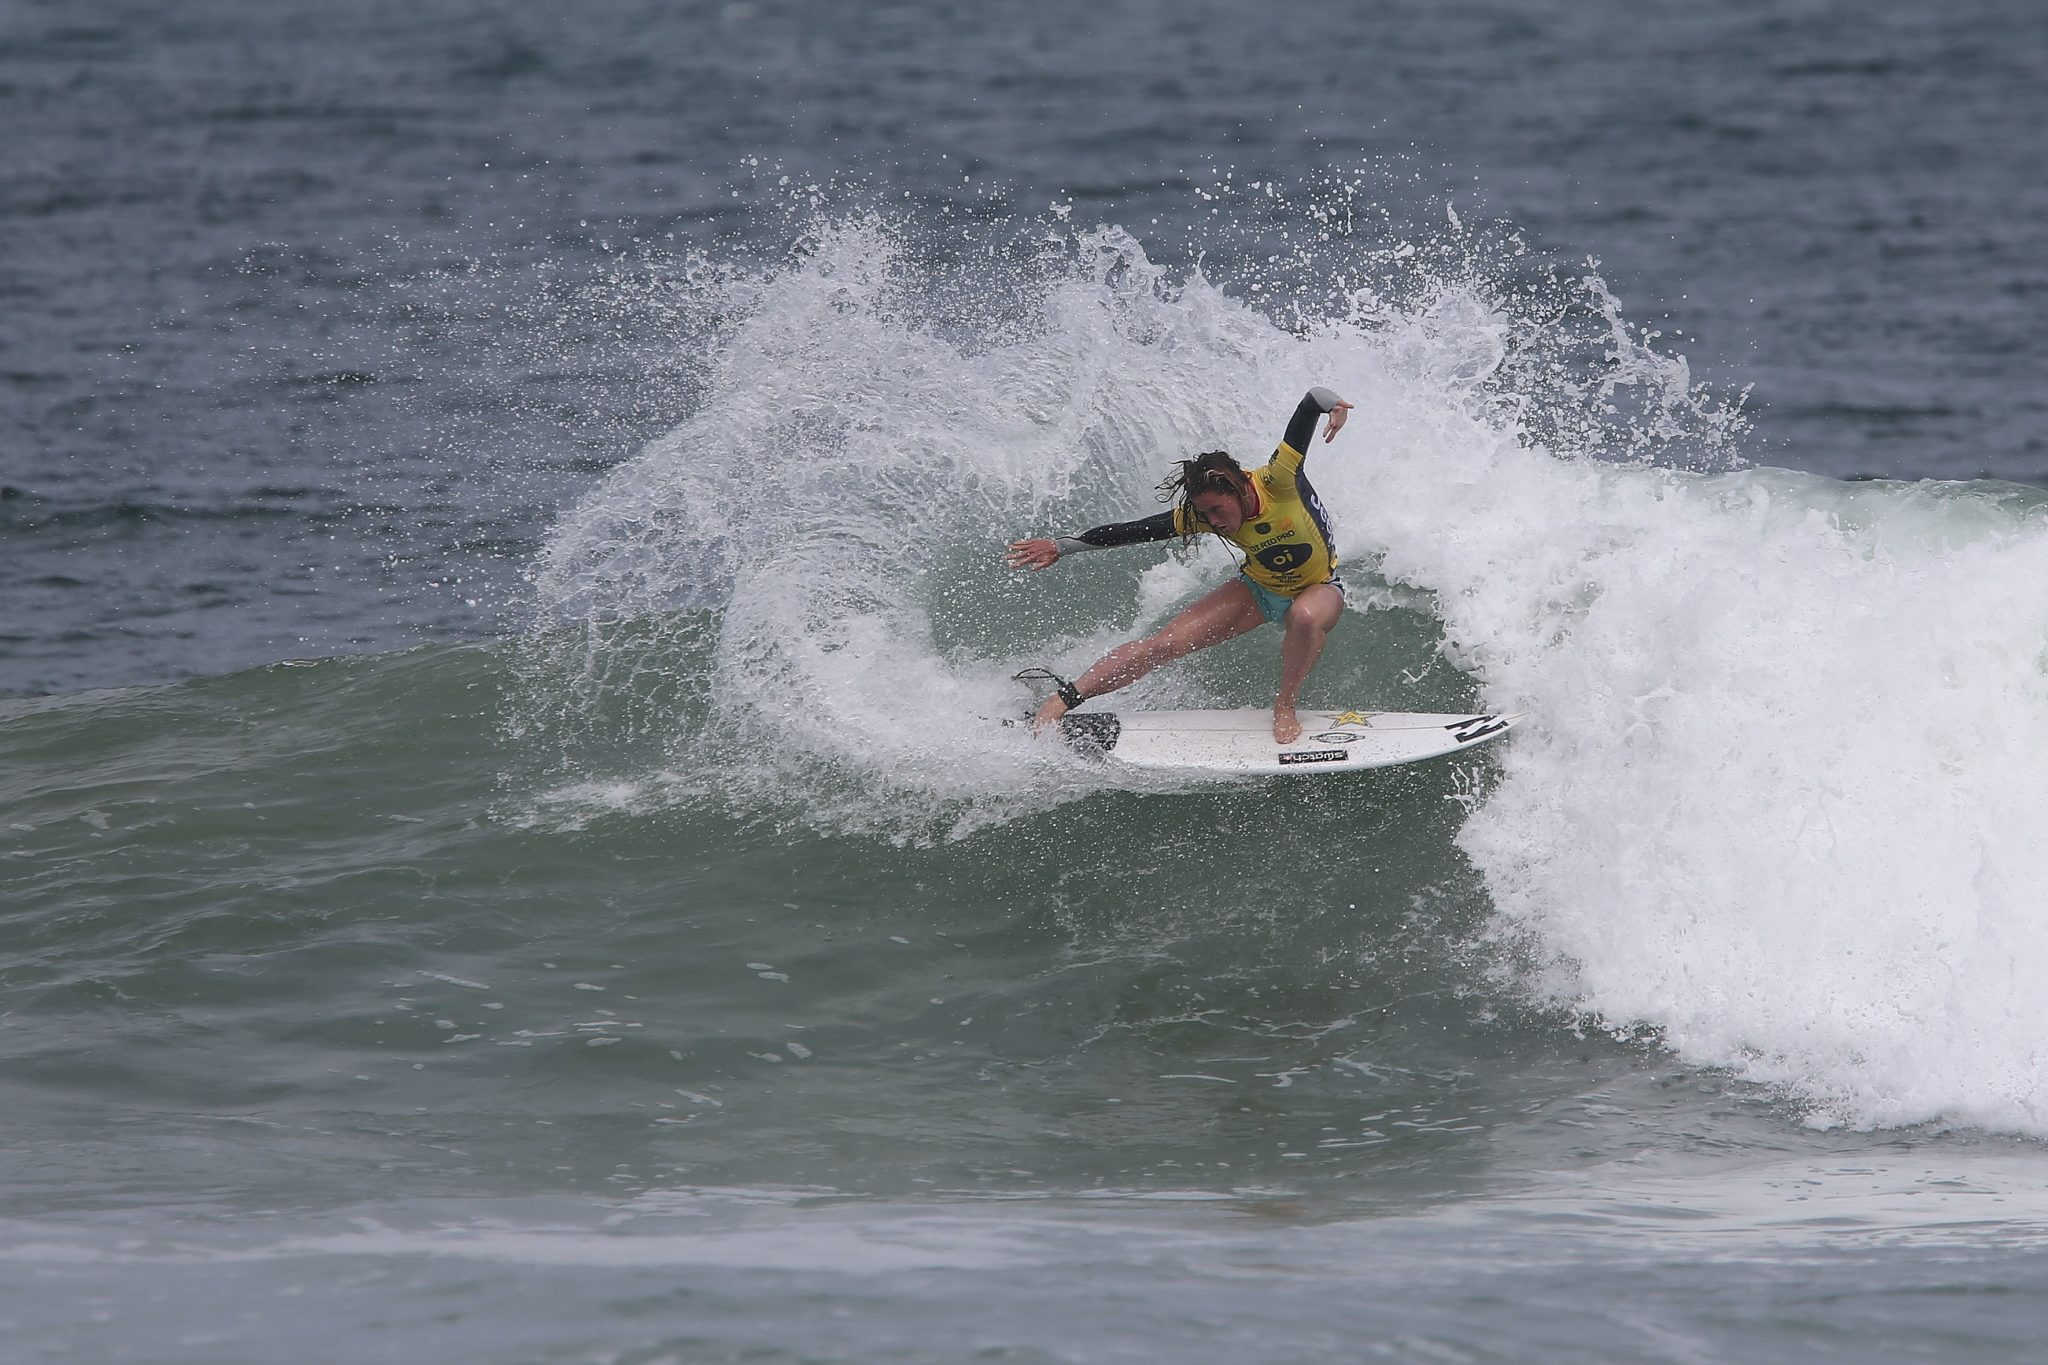 Courtney Conlogue of the USA during round three at the Oi Rio Pro in Rio de Janeiro, Brasil on Wednesday May 11, 2016.